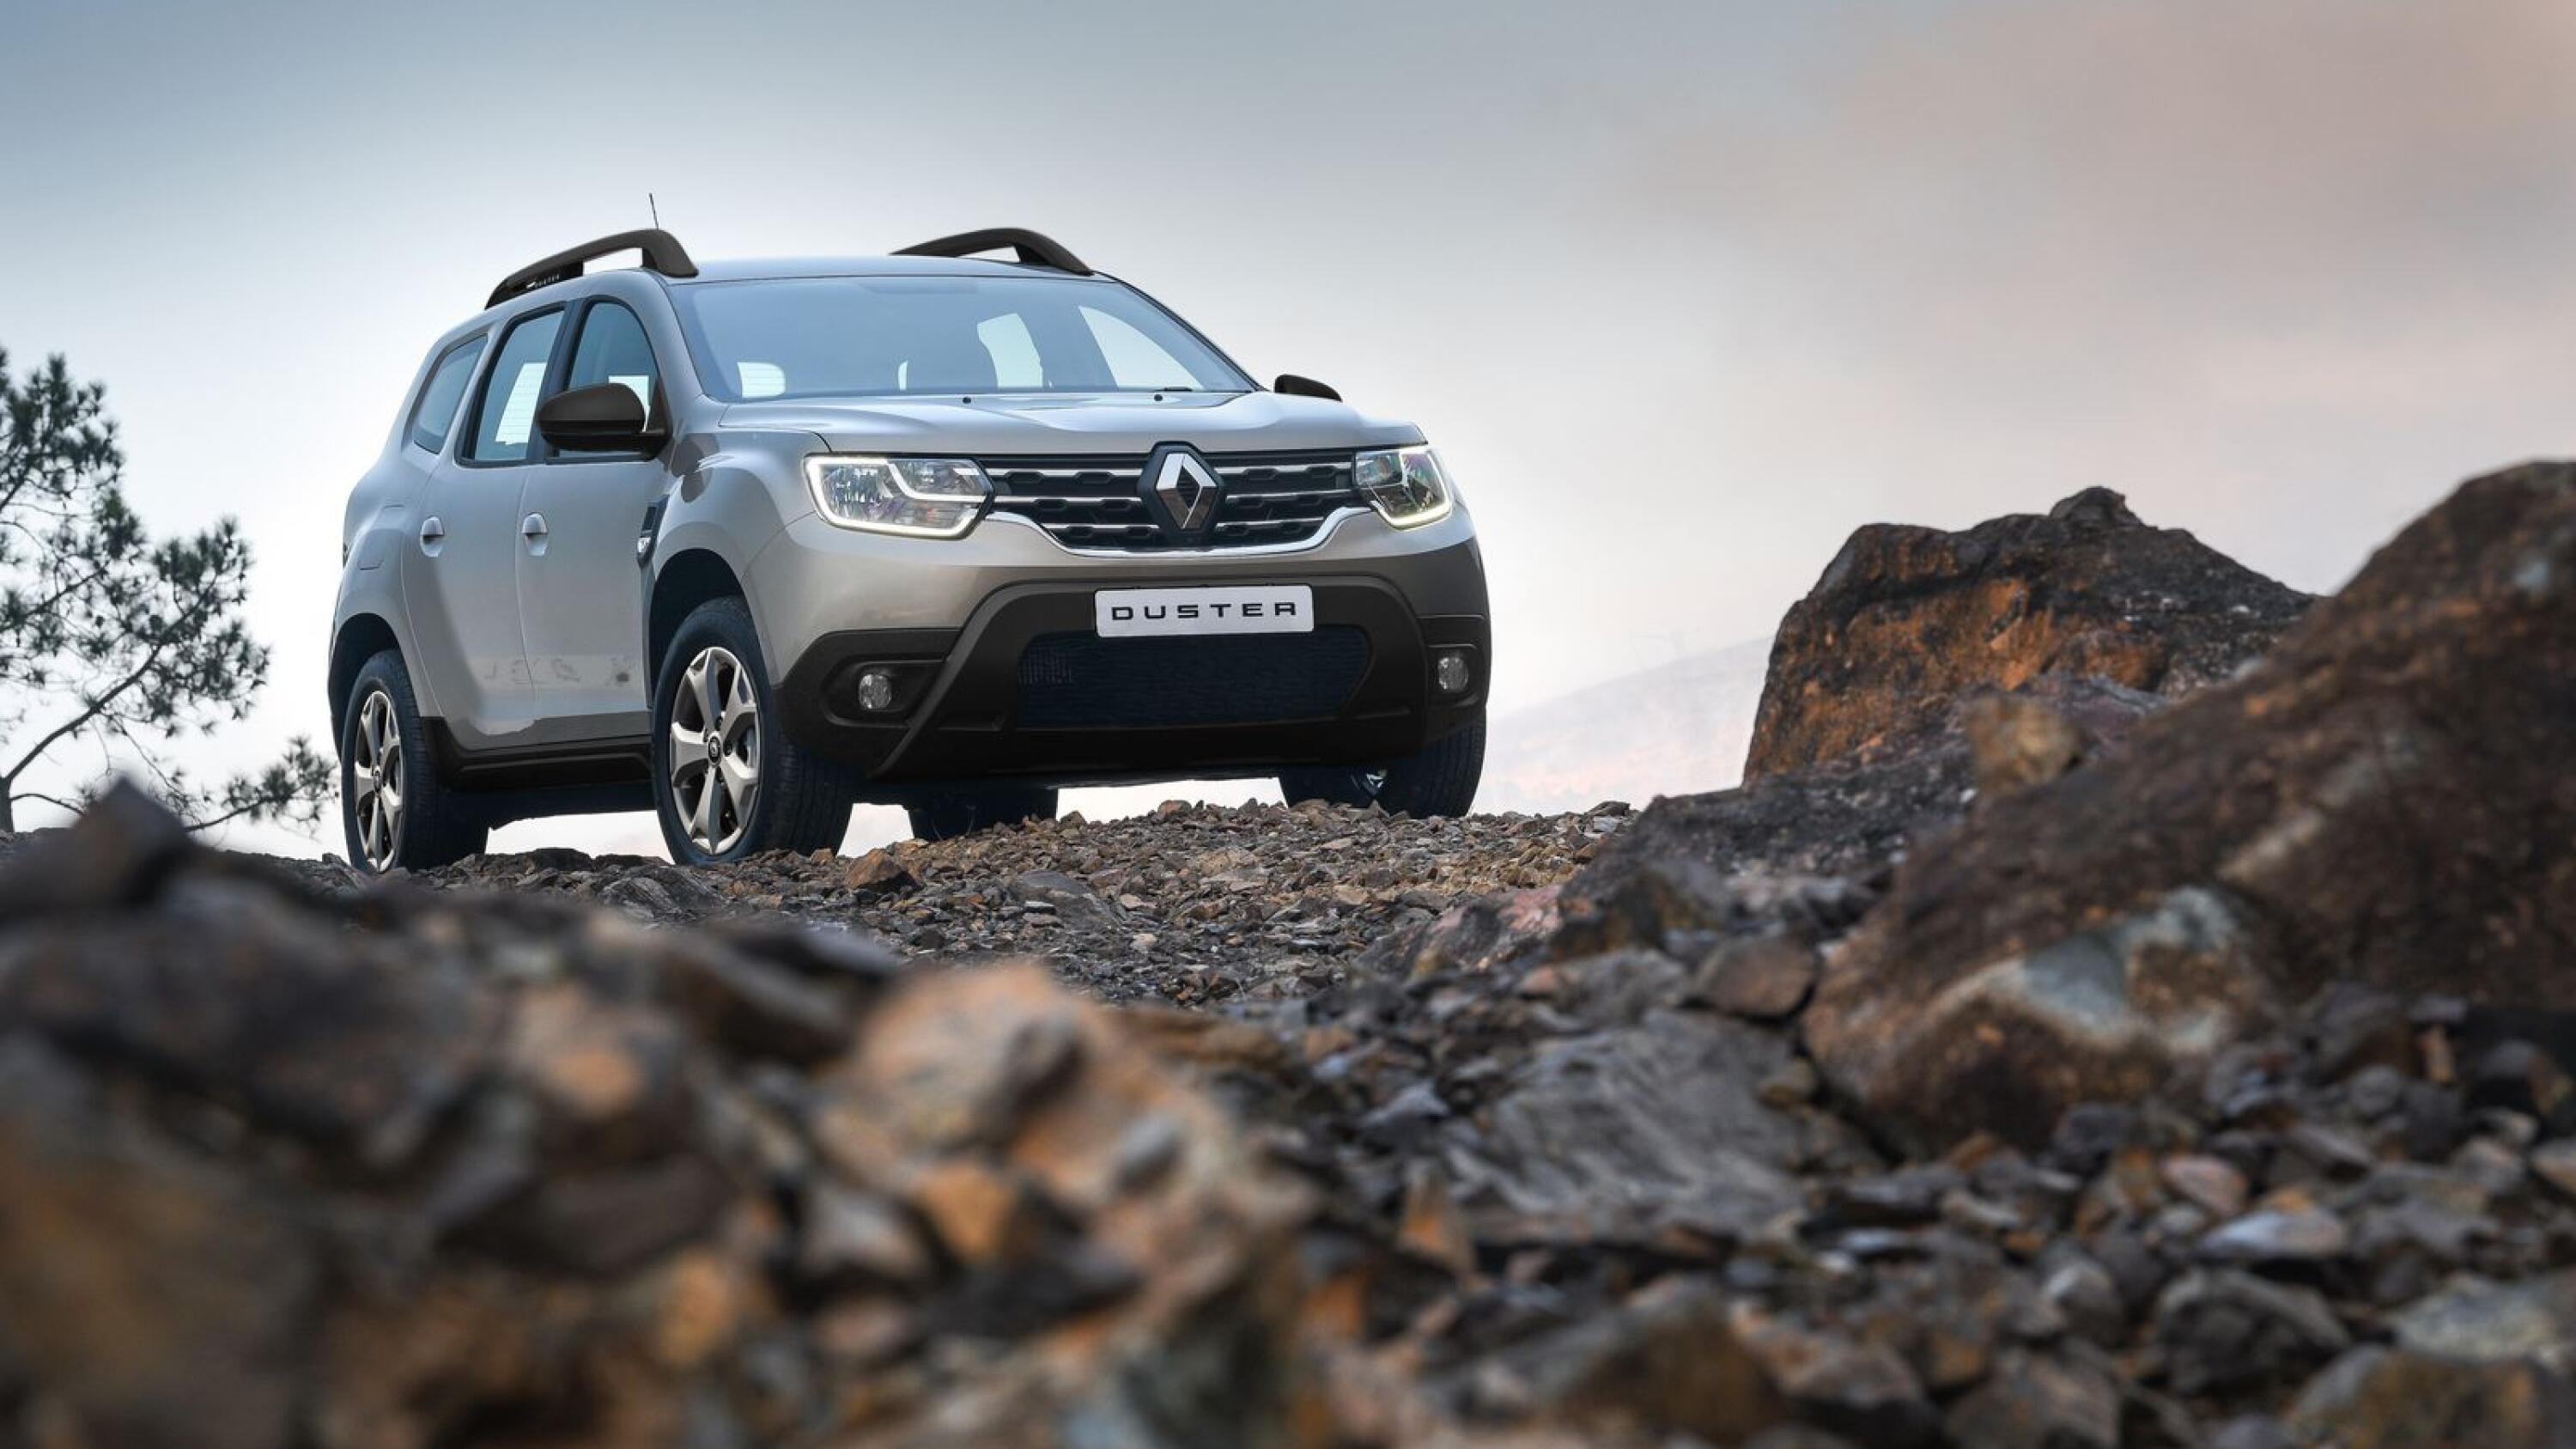 For 2021, the Renault Duster will continue as is